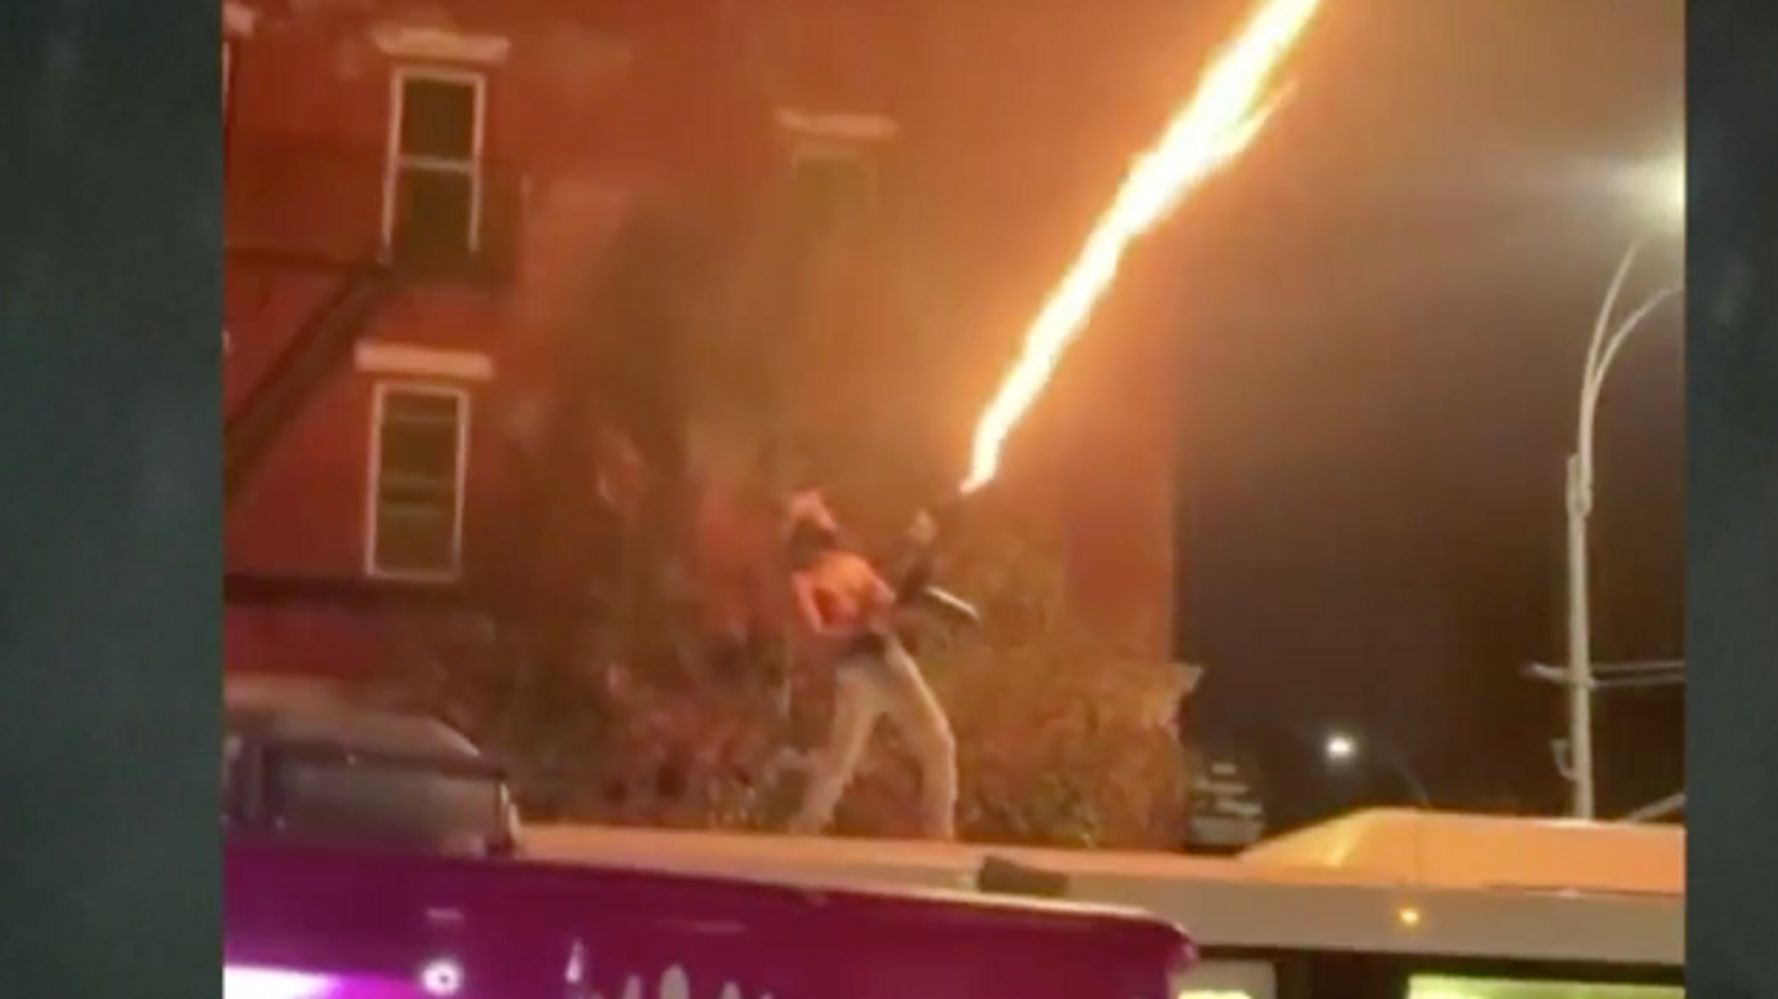 Man Ignites Flamethrower On Top Of Occupied NYC Bus, Cops Investigating